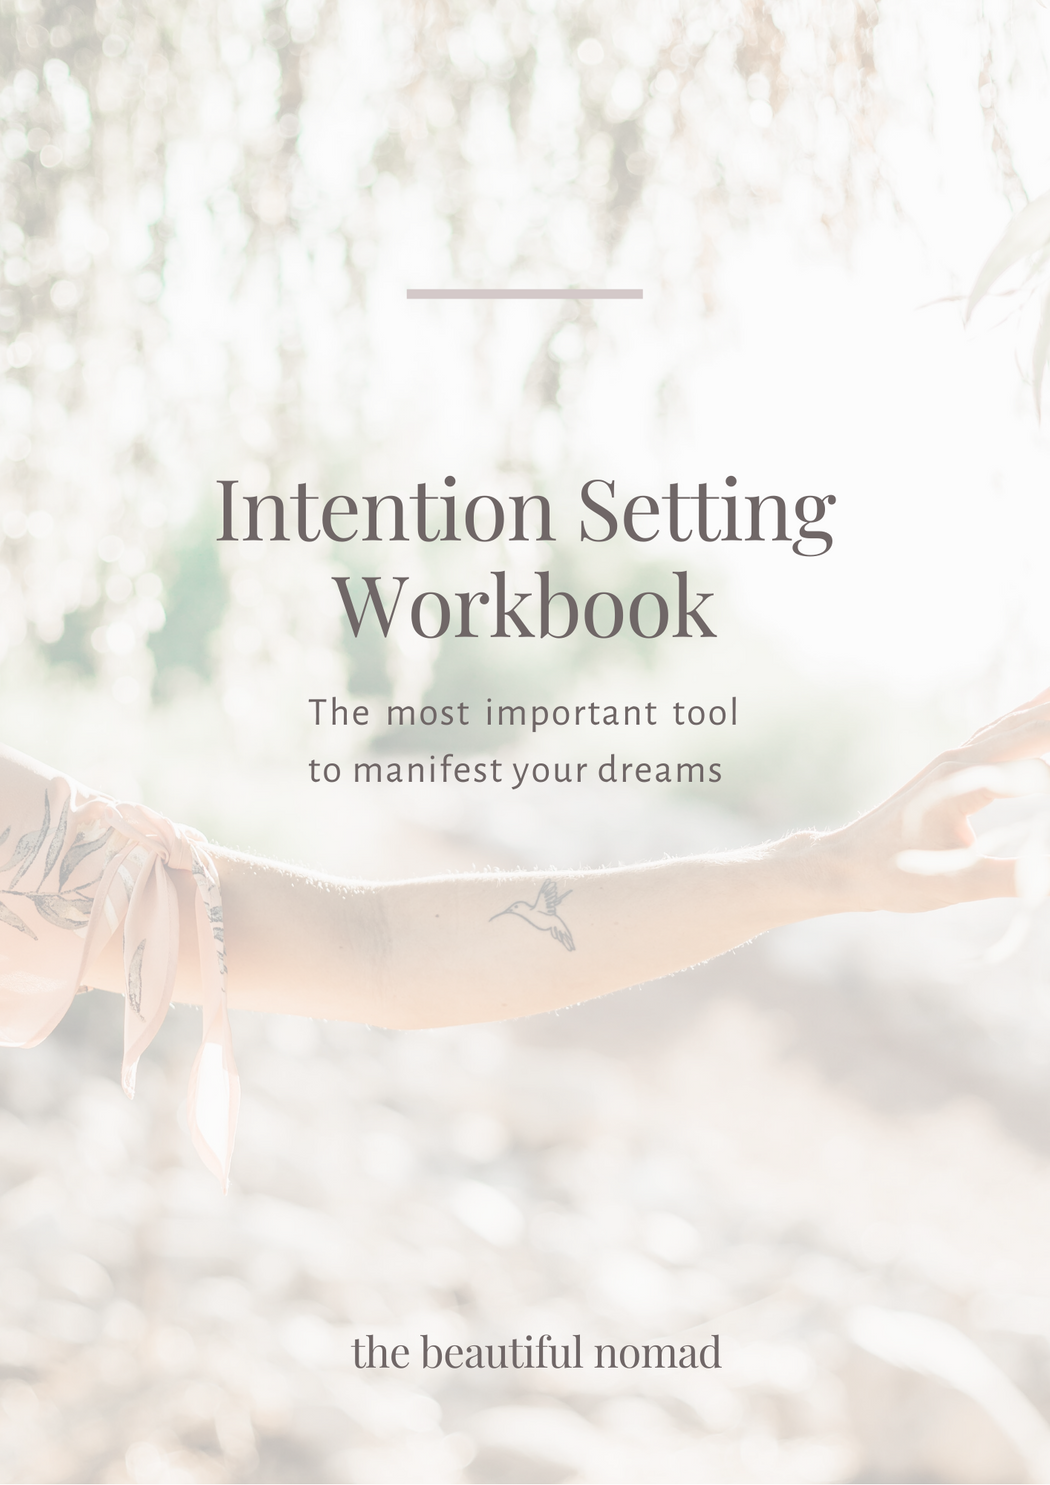 Intention Setting Workbook